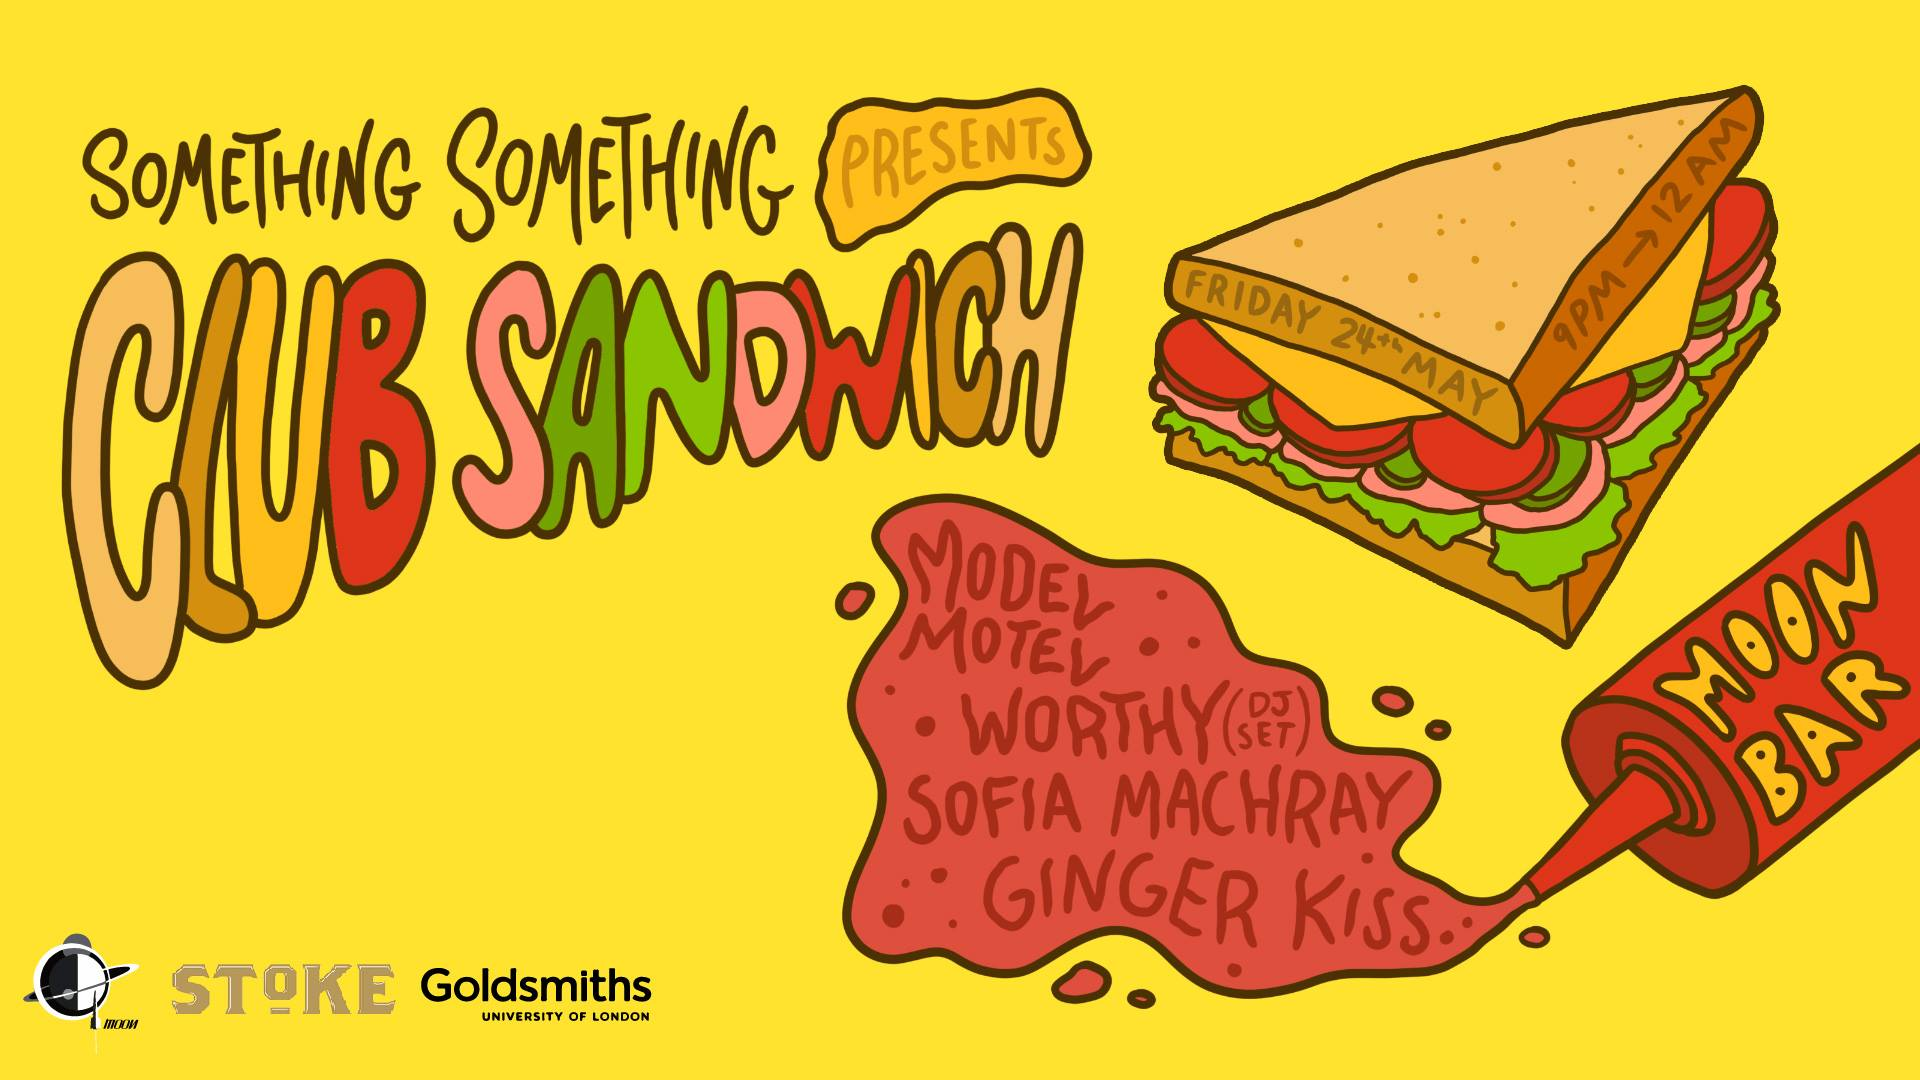 Something Something Presents: Club Sandwich